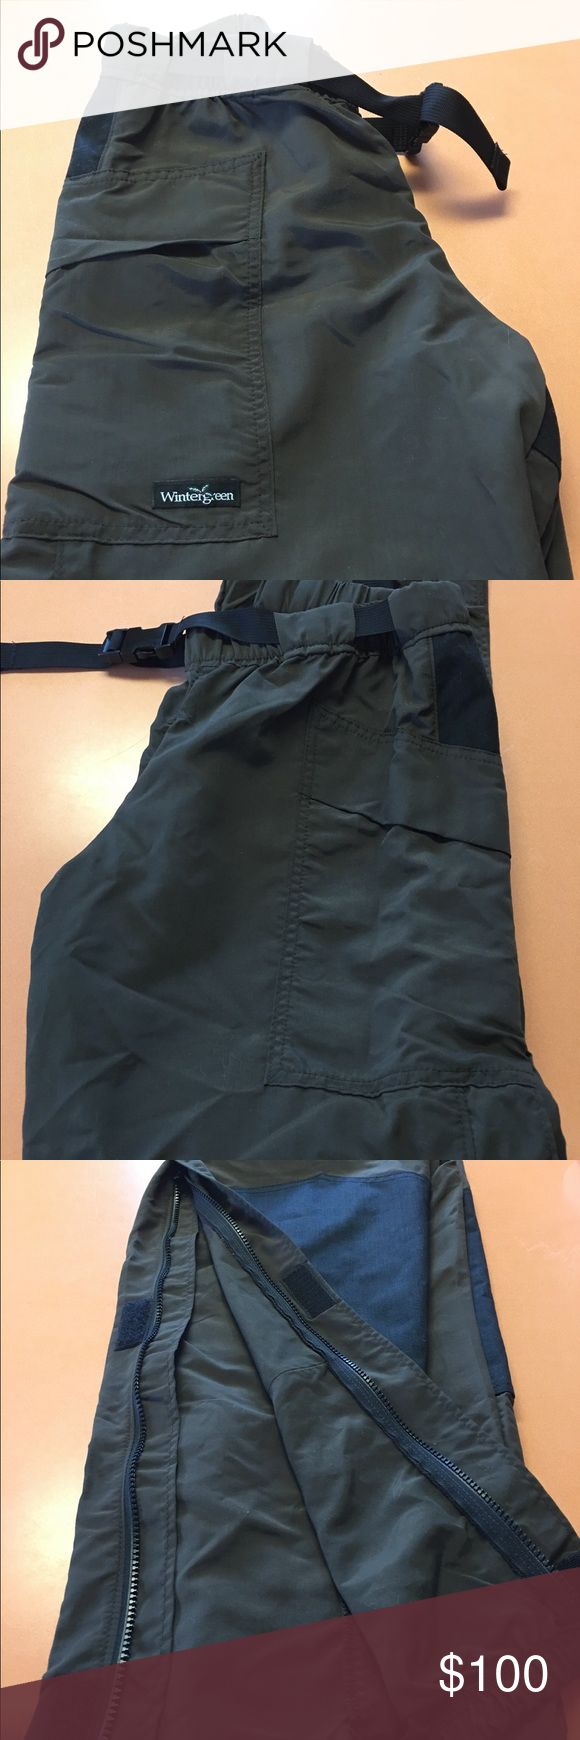 """Wintergreen Northern wear shell pants NWOT Wintergreen Northern wear shell pants. Handmade in Ely, MN   They are khaki green with black enforced knees and seat. Side zip and Velcro for easy on/off over your boots. The pants sell for over $200 (see their website). I purchased these in November and have never worn them.  I decided to go with a different system but I am past the return timeline. I will list them for half price. 30"""" inseam and 27"""" elastic waist. Wintergreen Northern Wear Pants"""